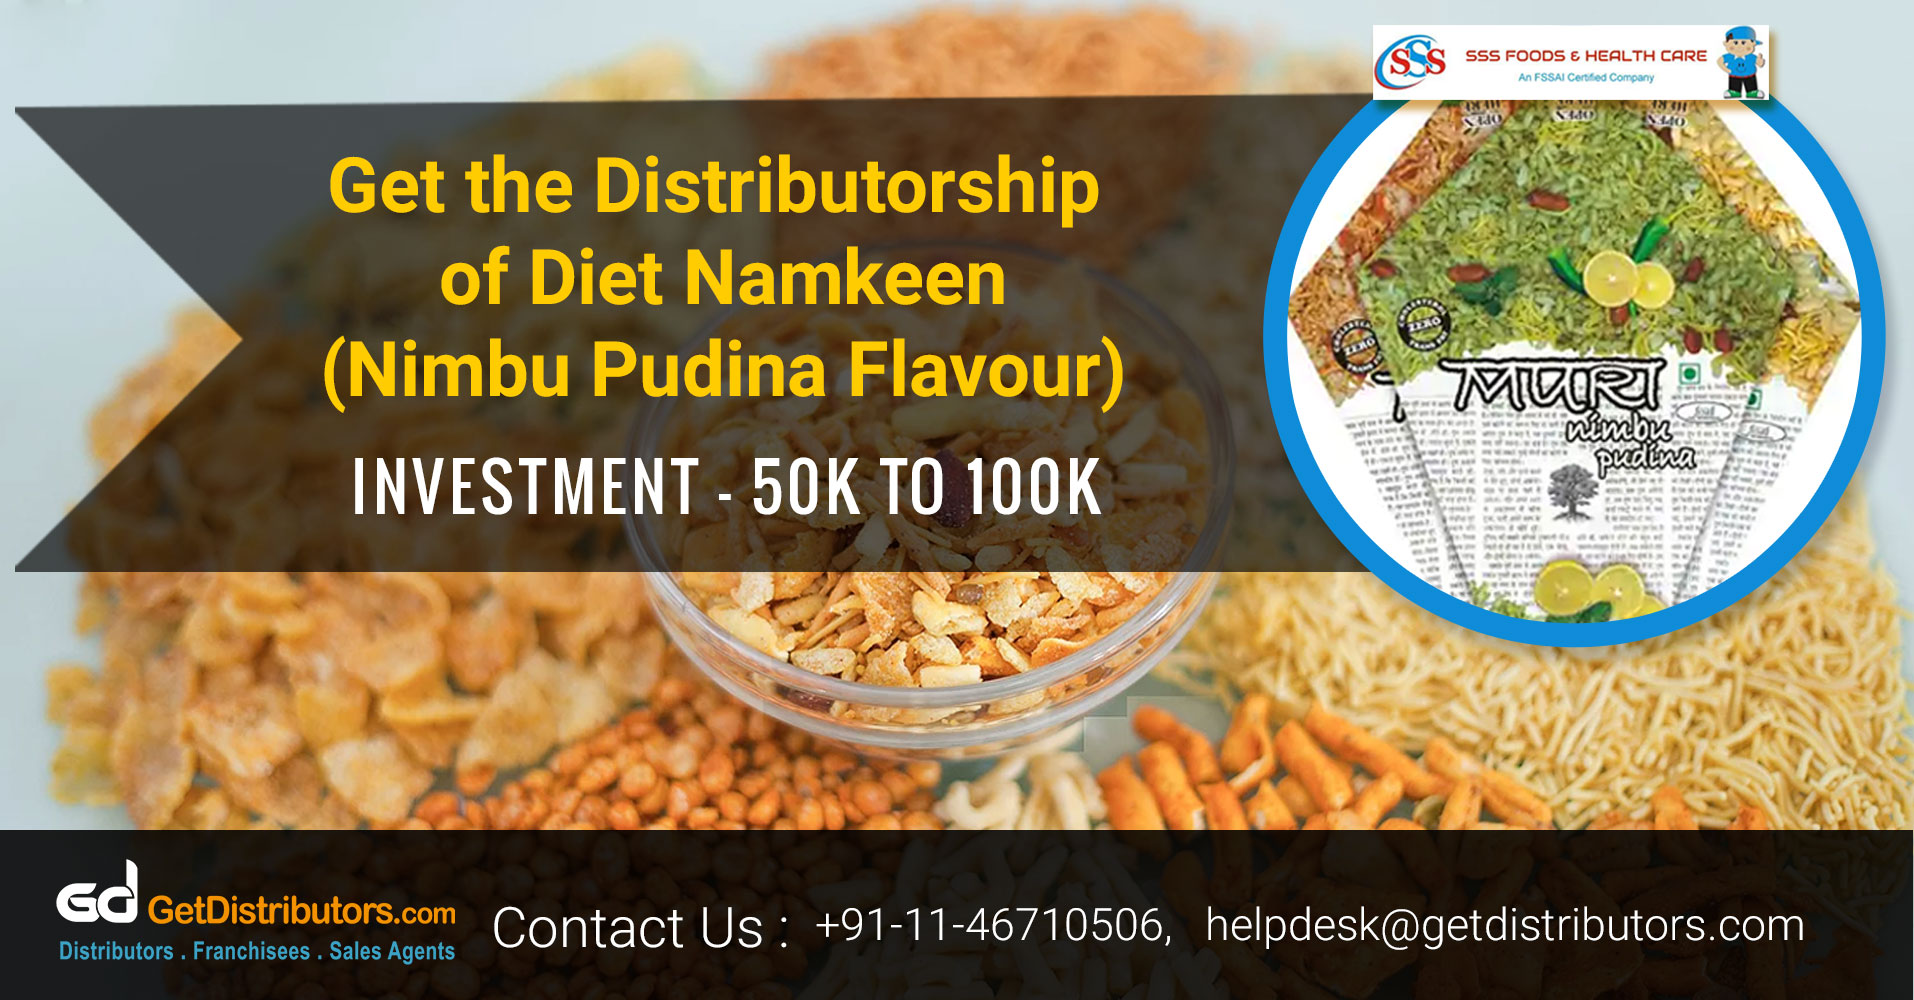 How To Take The Distributorship Of Crispy And Crunchy Namkeen